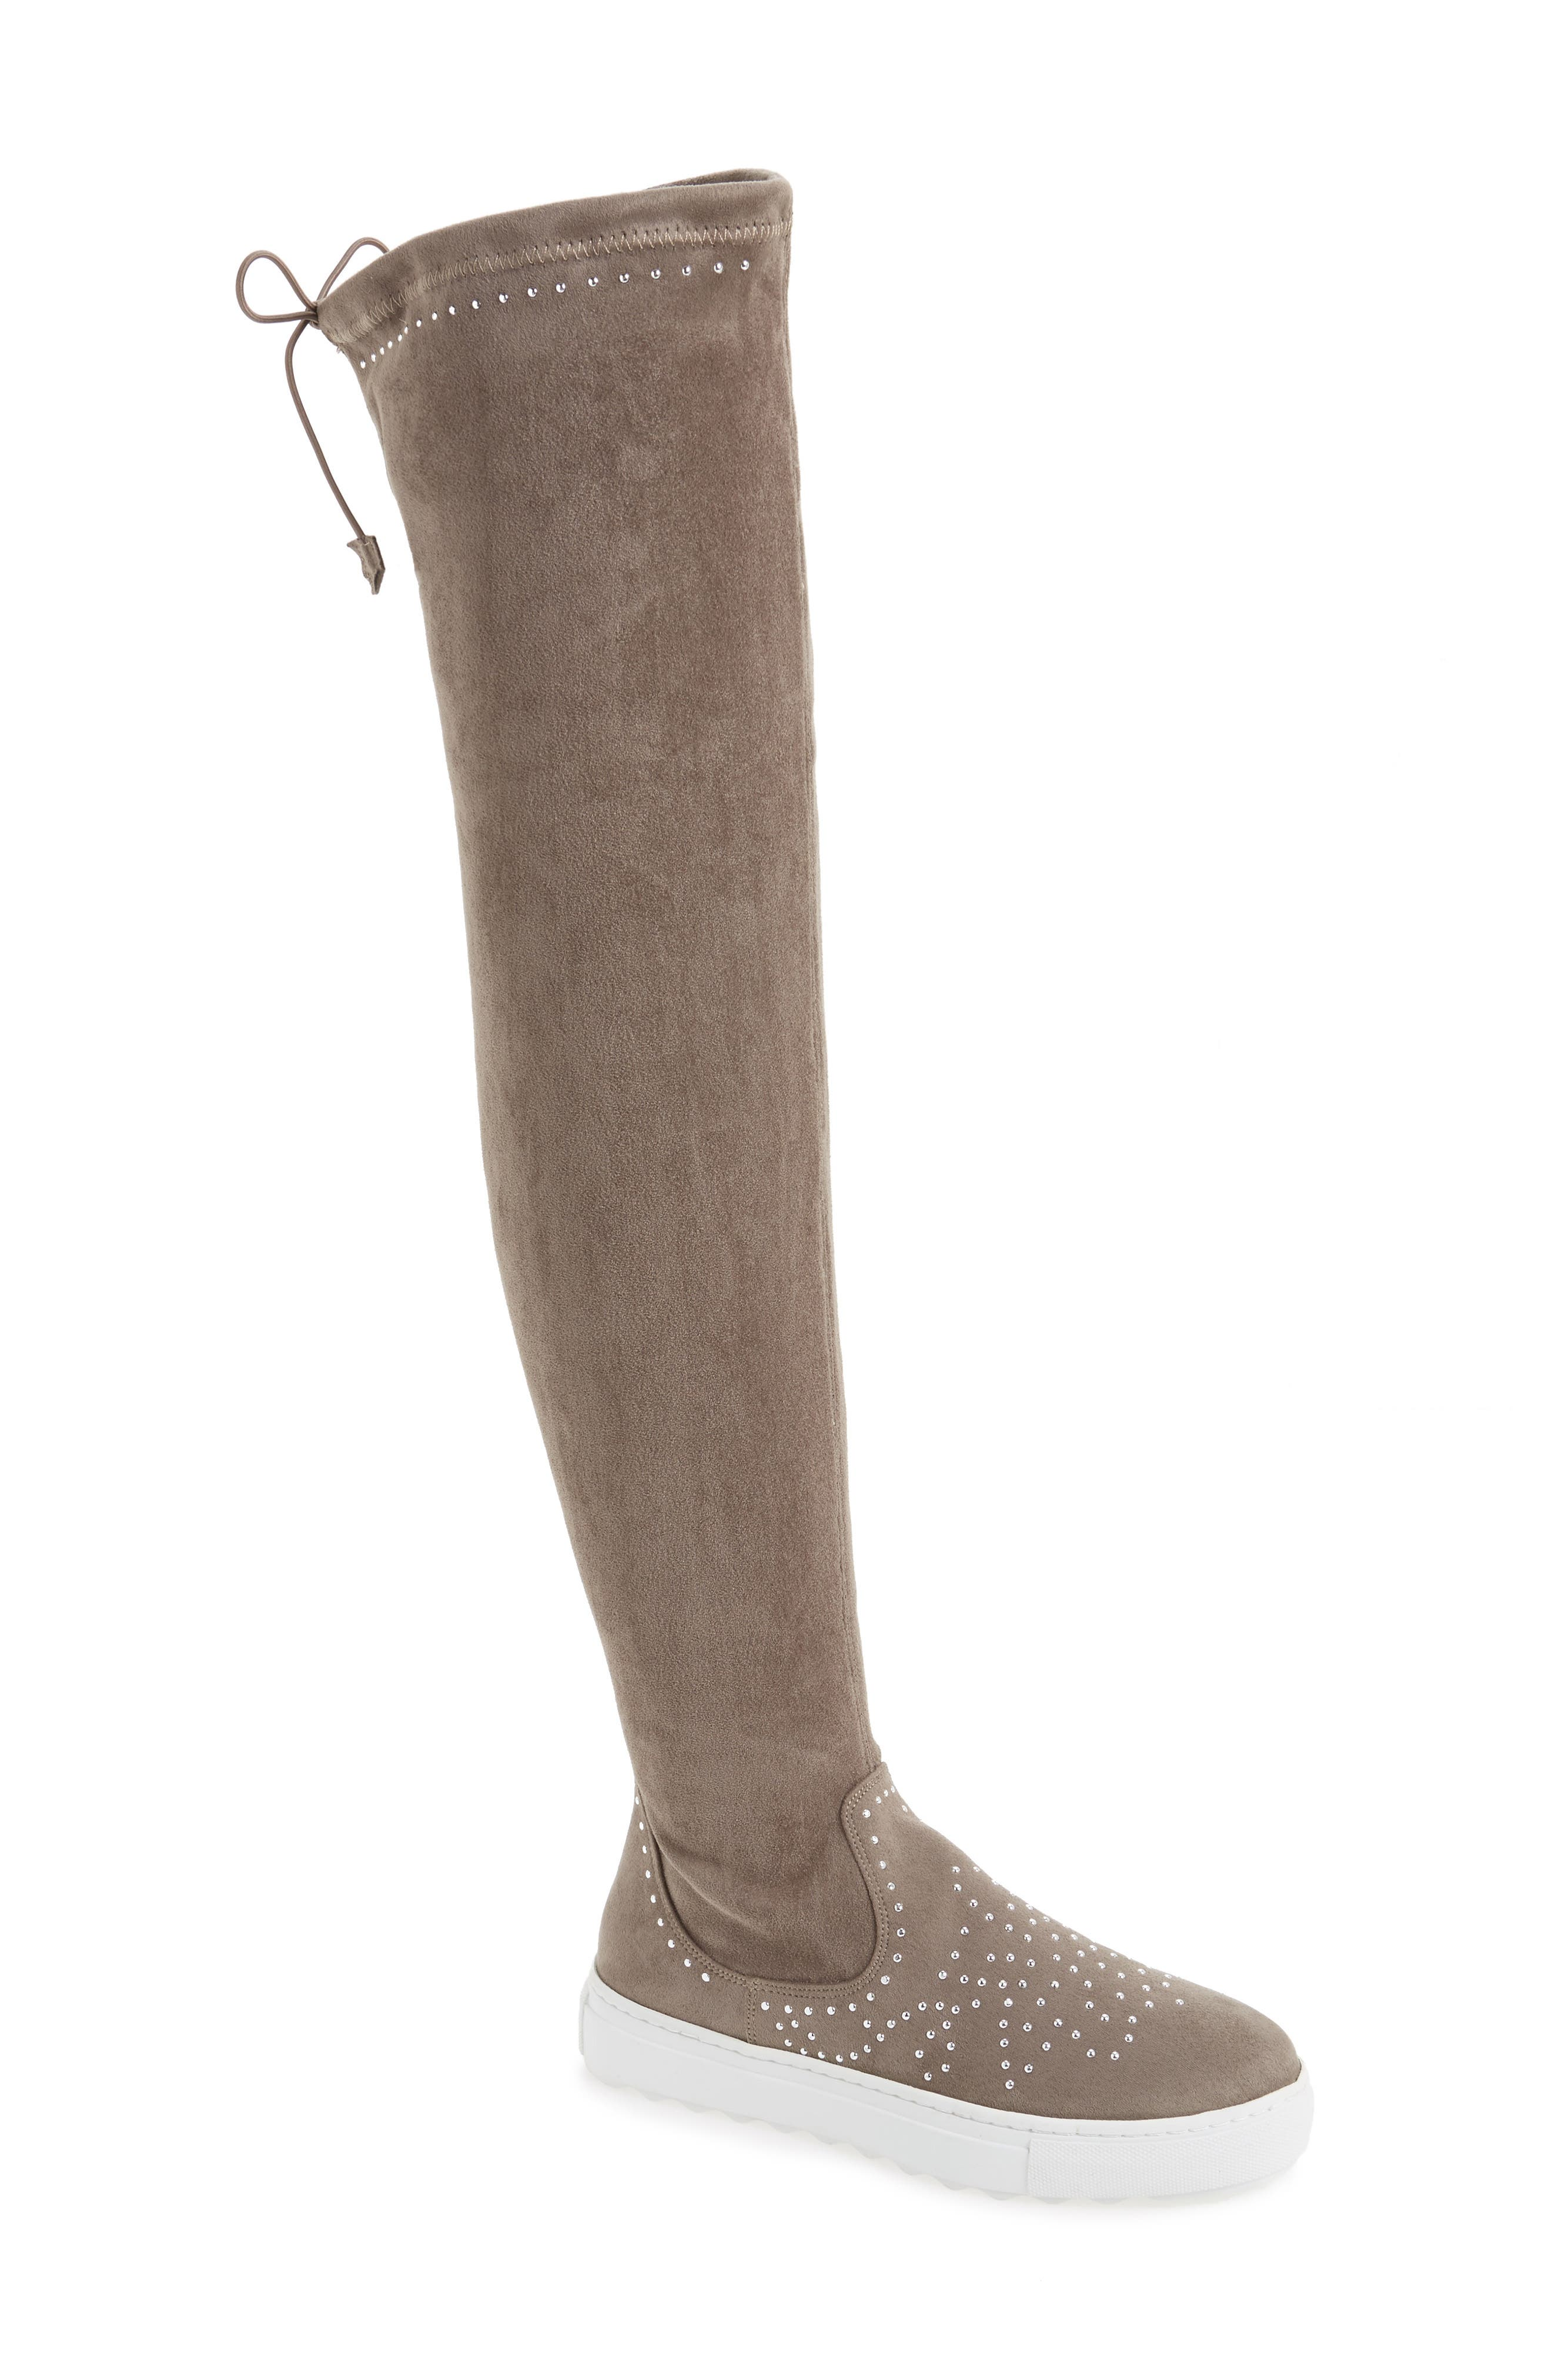 JSlides Partee Over the Knee Boot (Women)